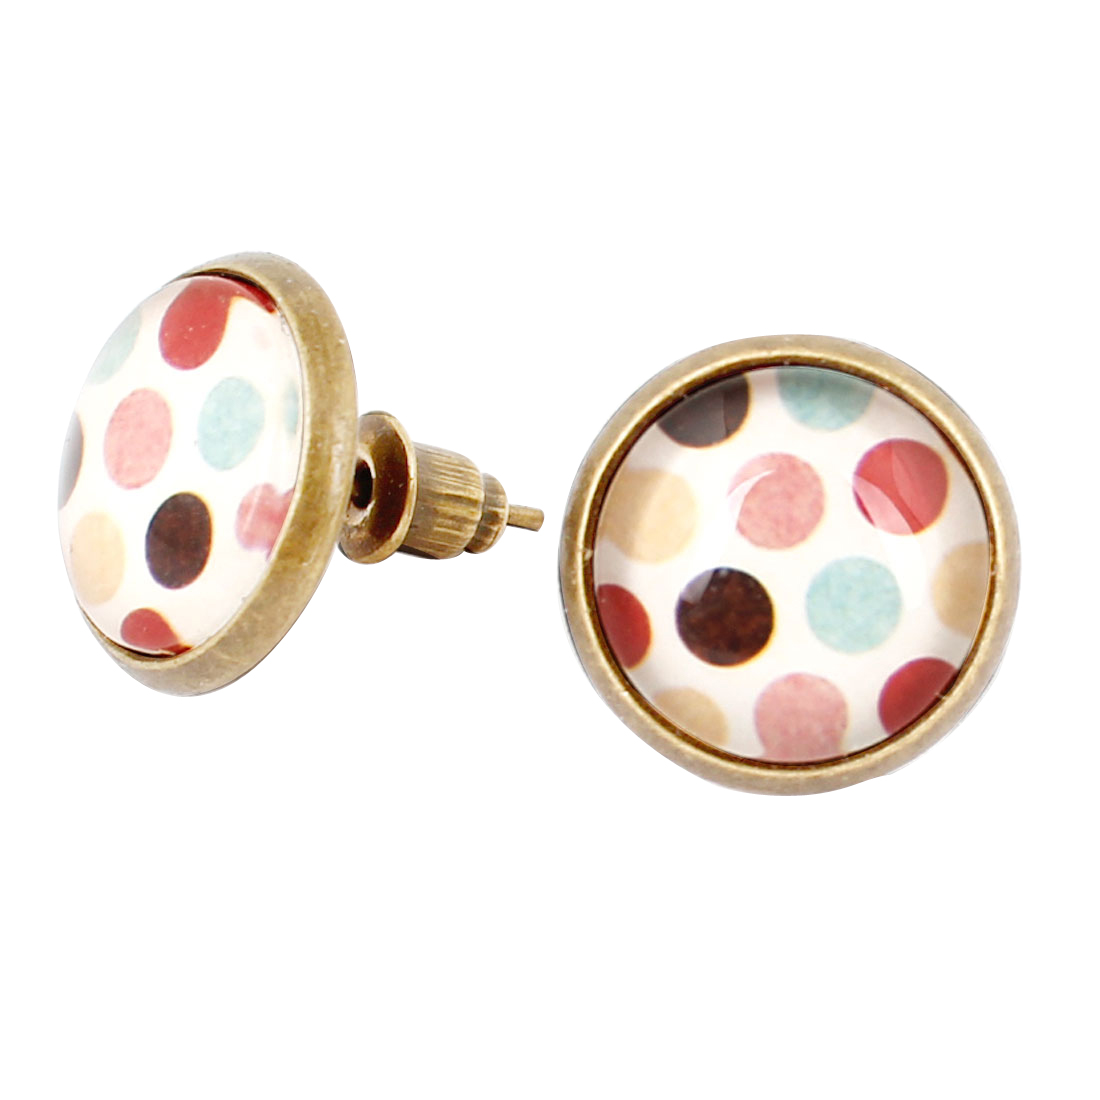 Pair Colorful Dot Print Round Shape Stud Earrings Bronze Tone Decoration